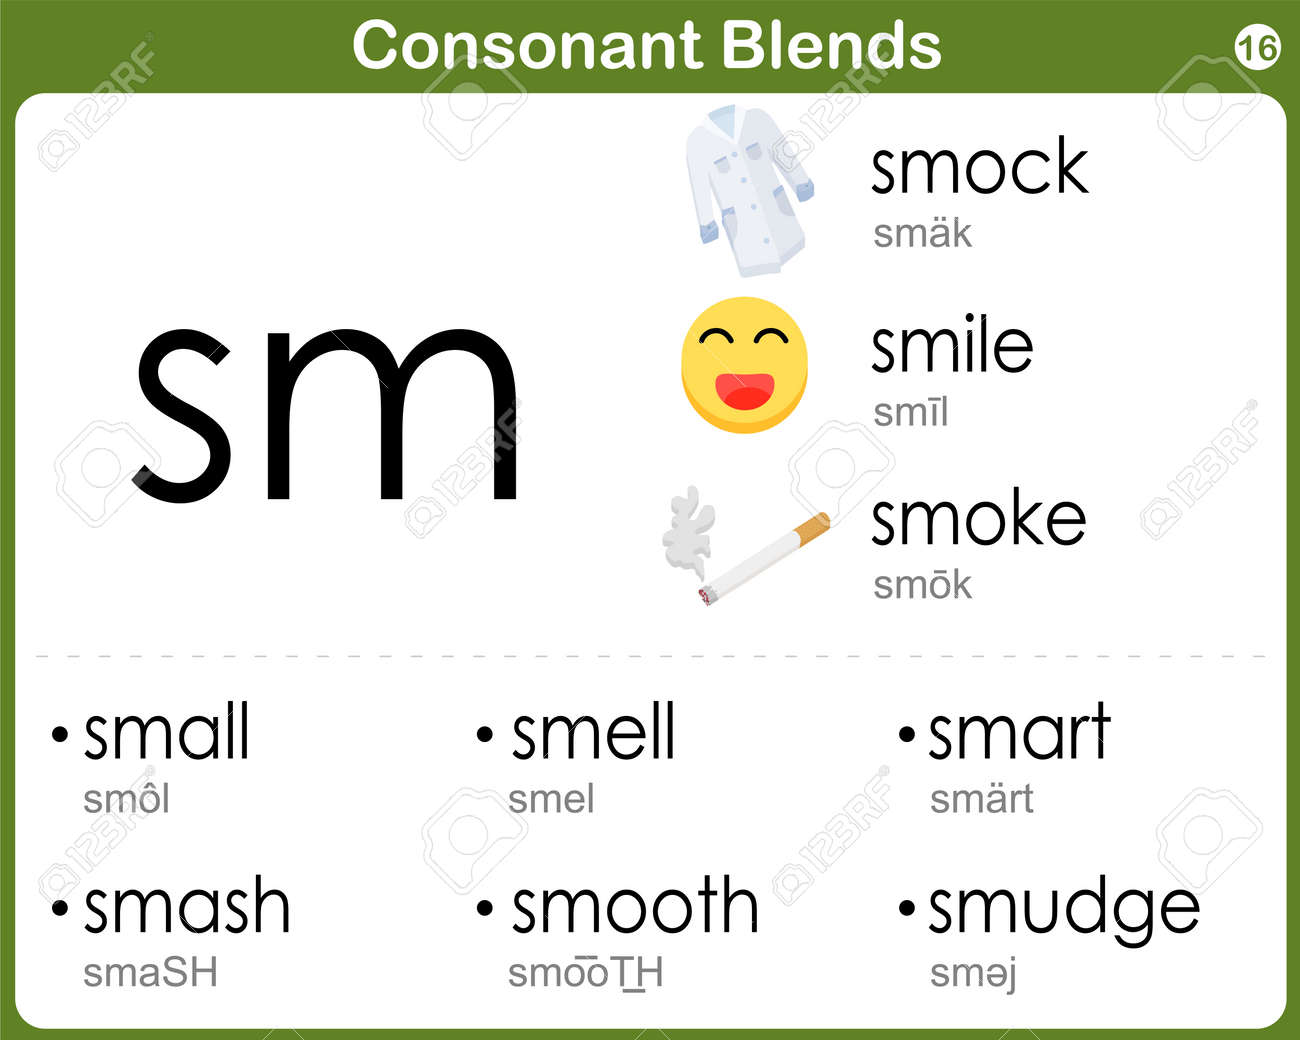 Consonant Blends Worksheet For Kids Royalty Free Cliparts Vectors – Consonant Blend Worksheets